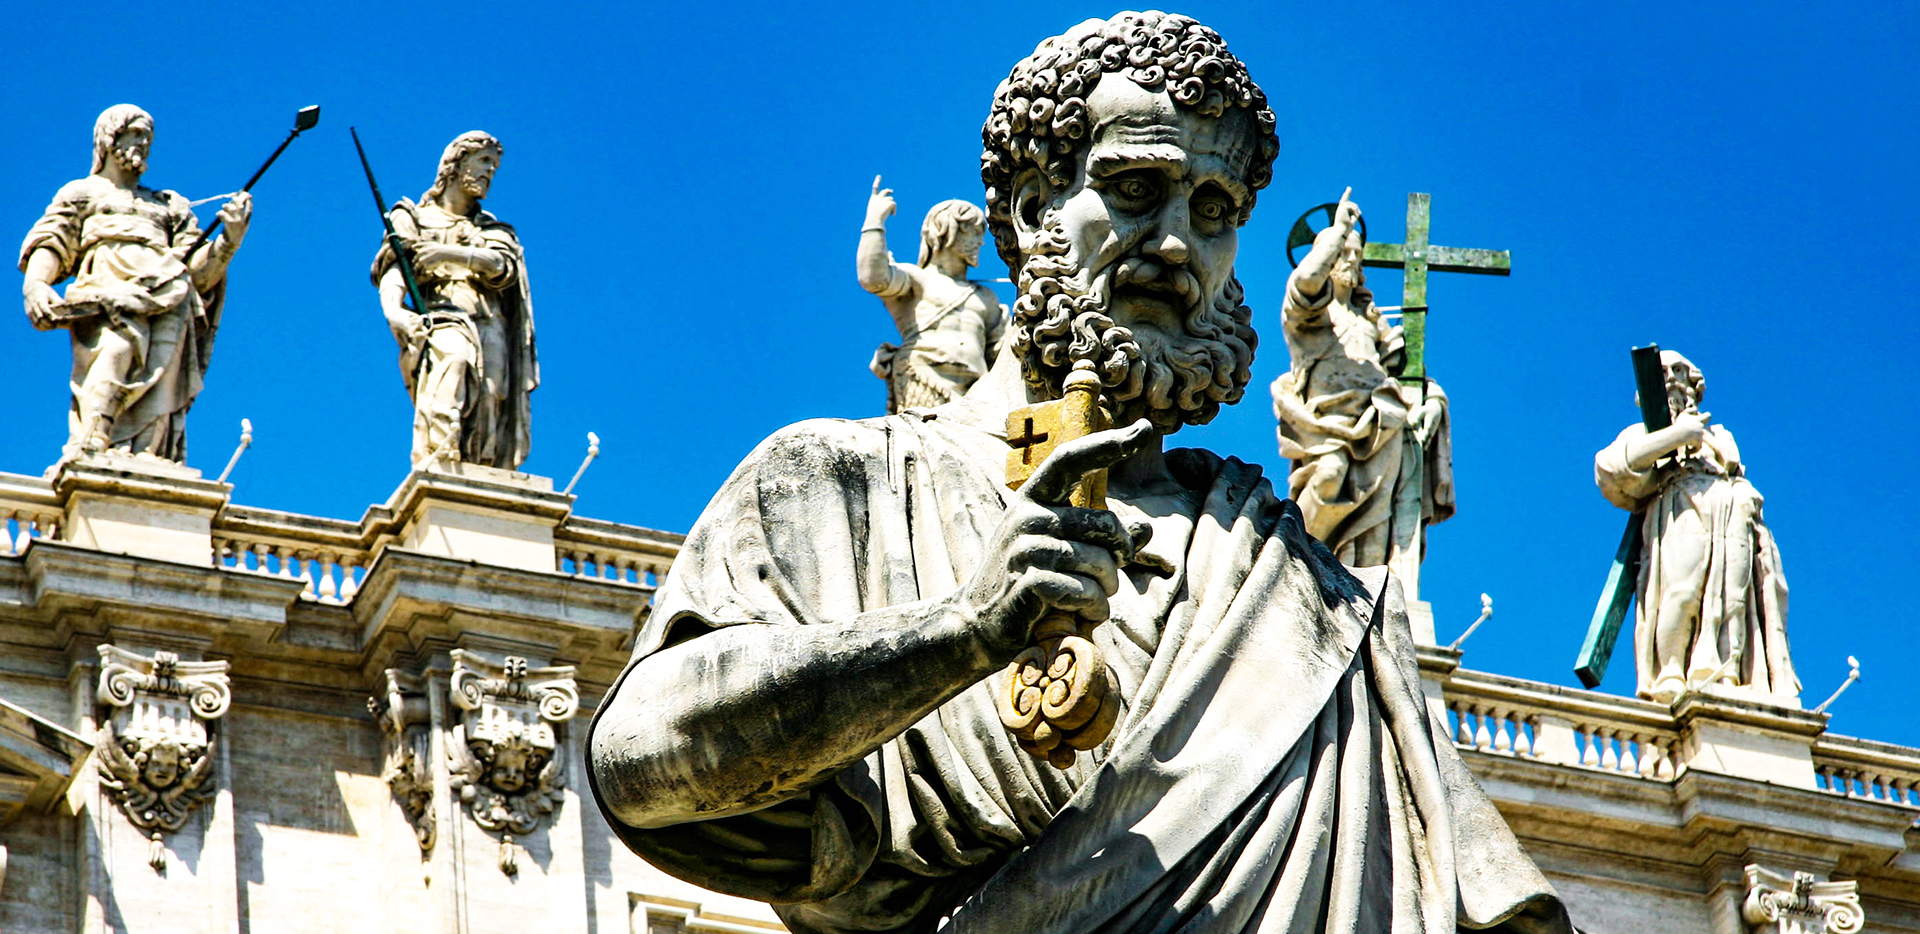 Statue of Saint Peter Judging